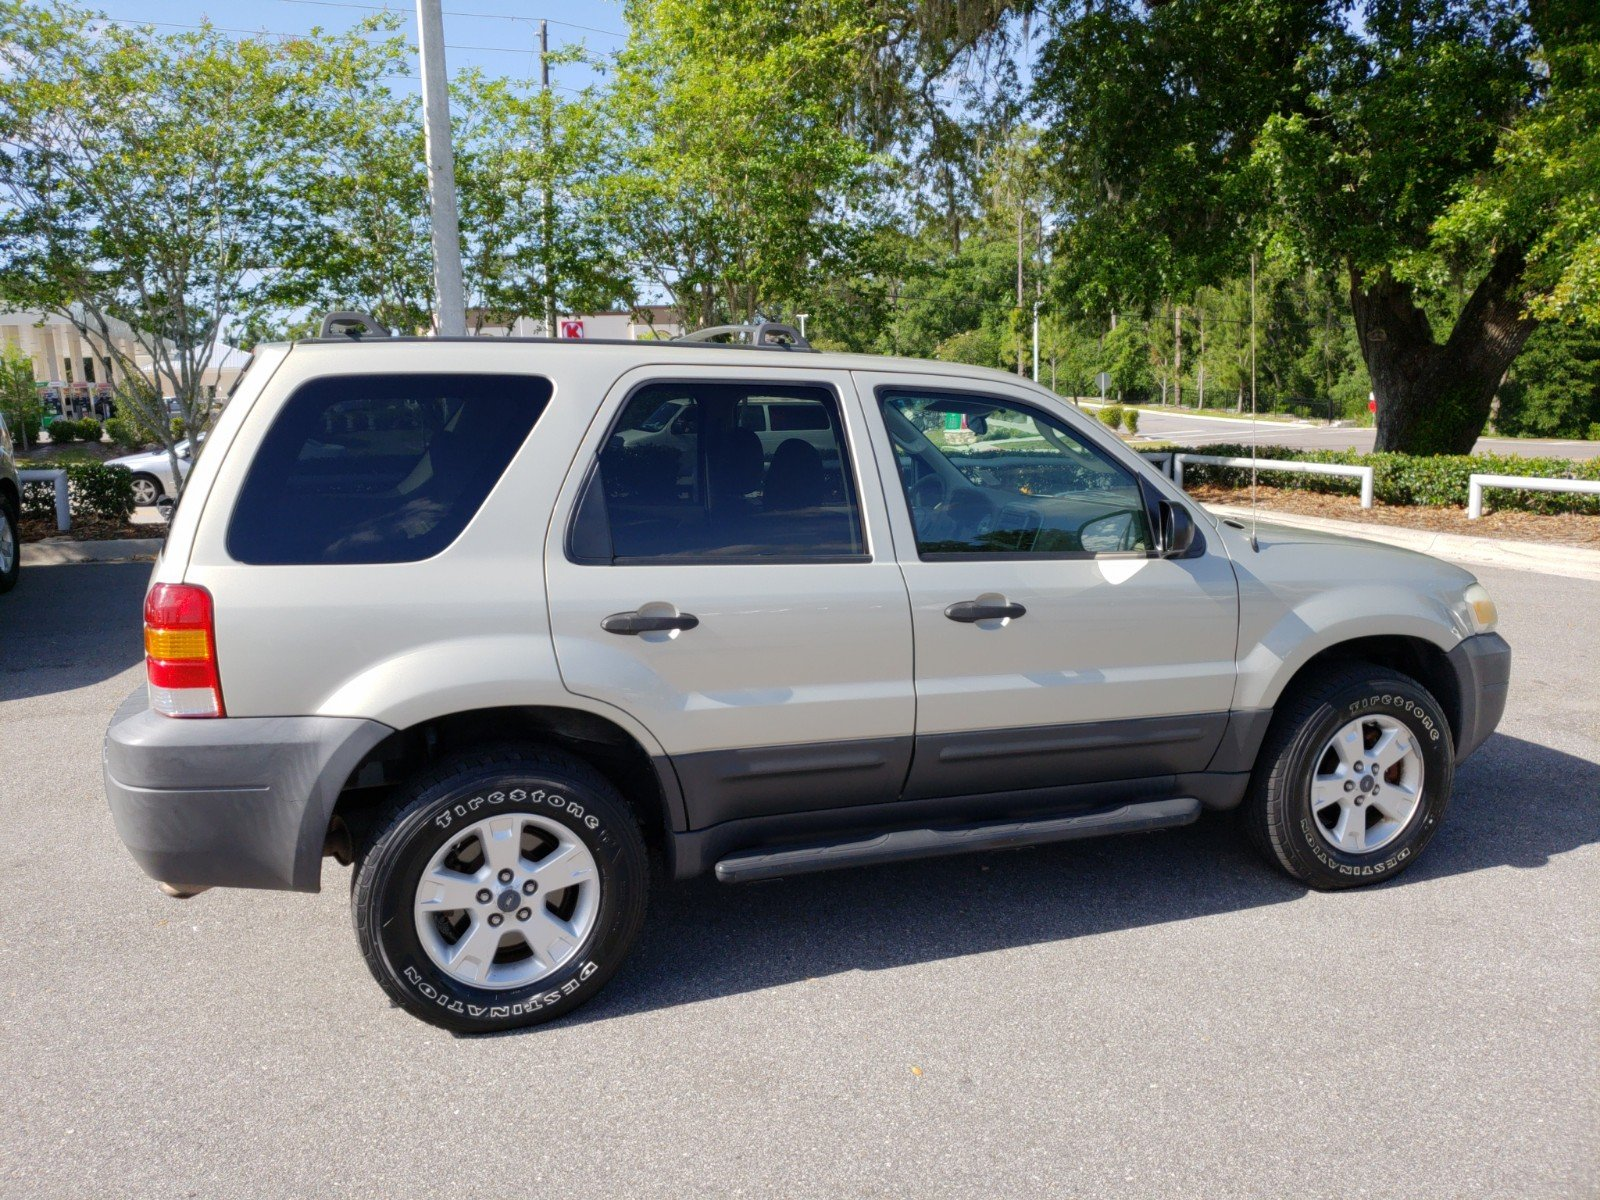 Pre Owned 2005 Ford Escape Xlt Suv In Titusville Jc045315a Parks Isuzu Ascender Fuel Filter